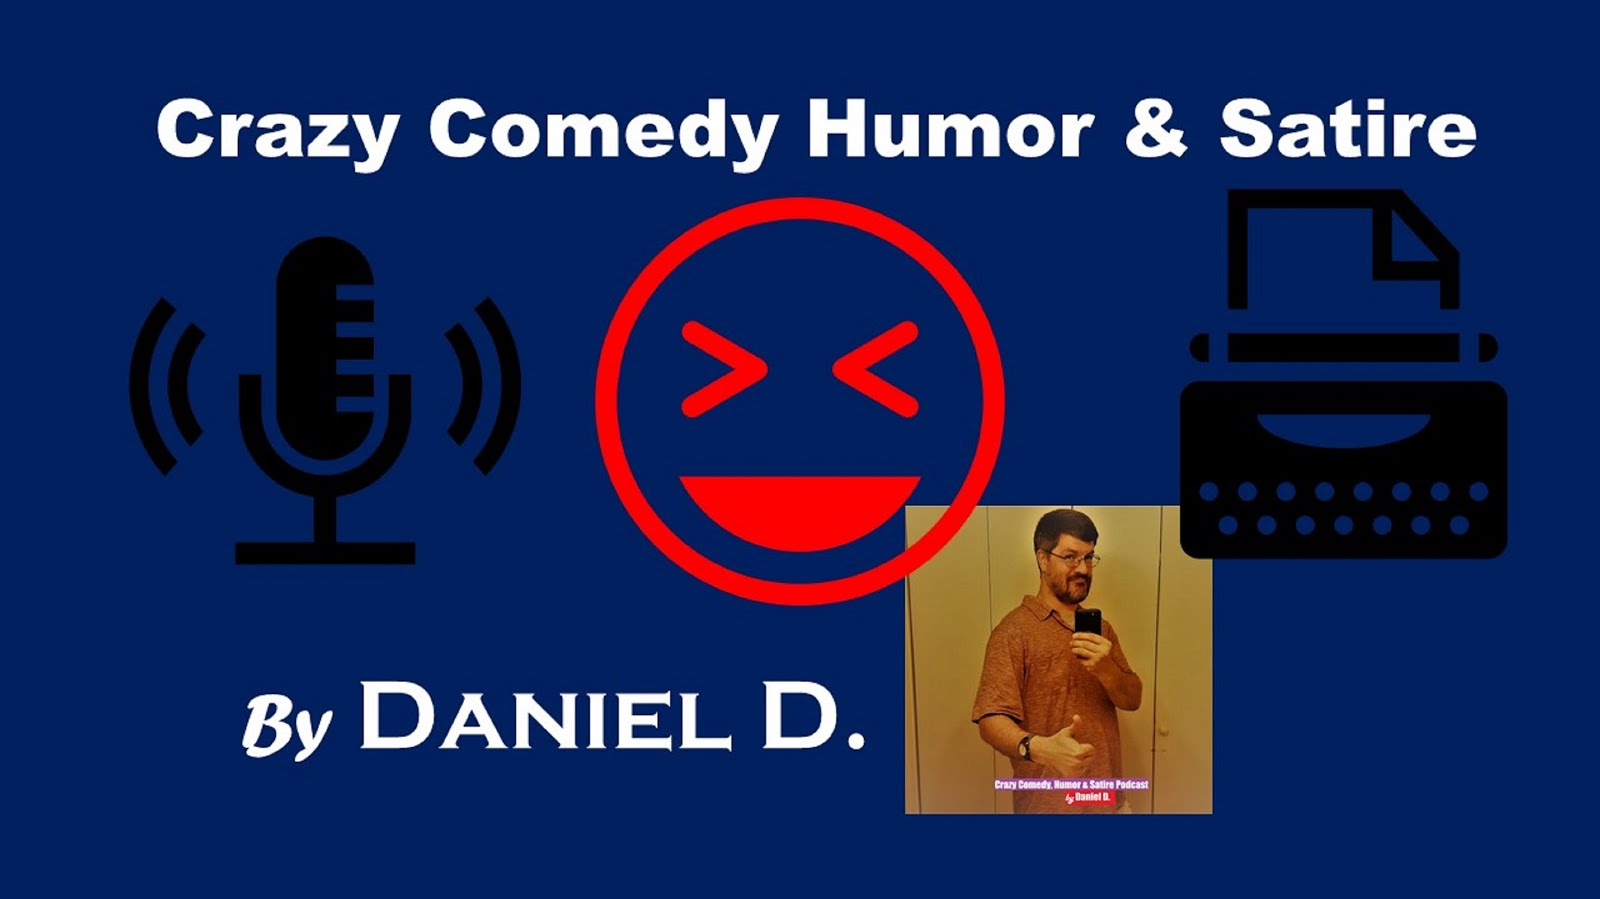 Crazy Comedy, Humor, and Satire by Daniel D